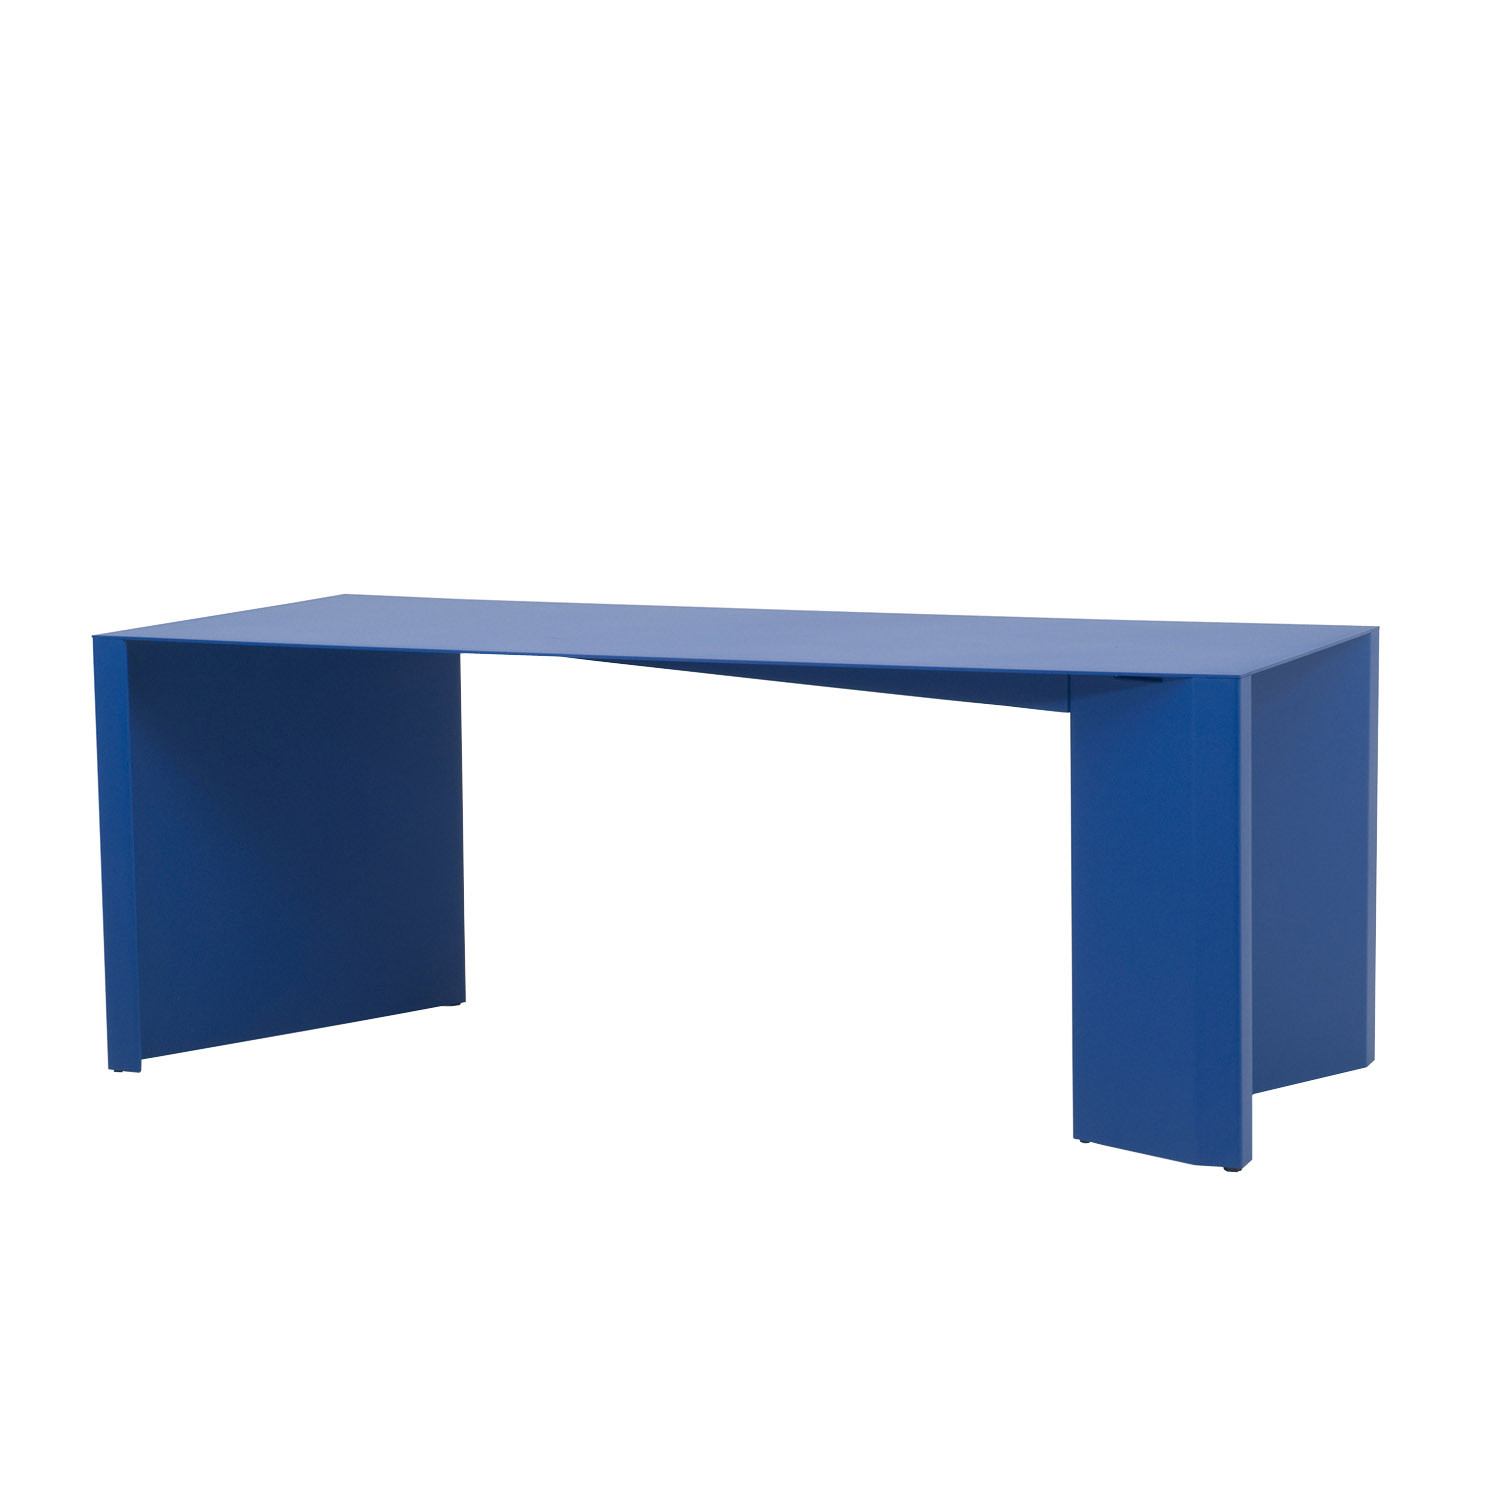 Bataille ibens Blue Z-Table